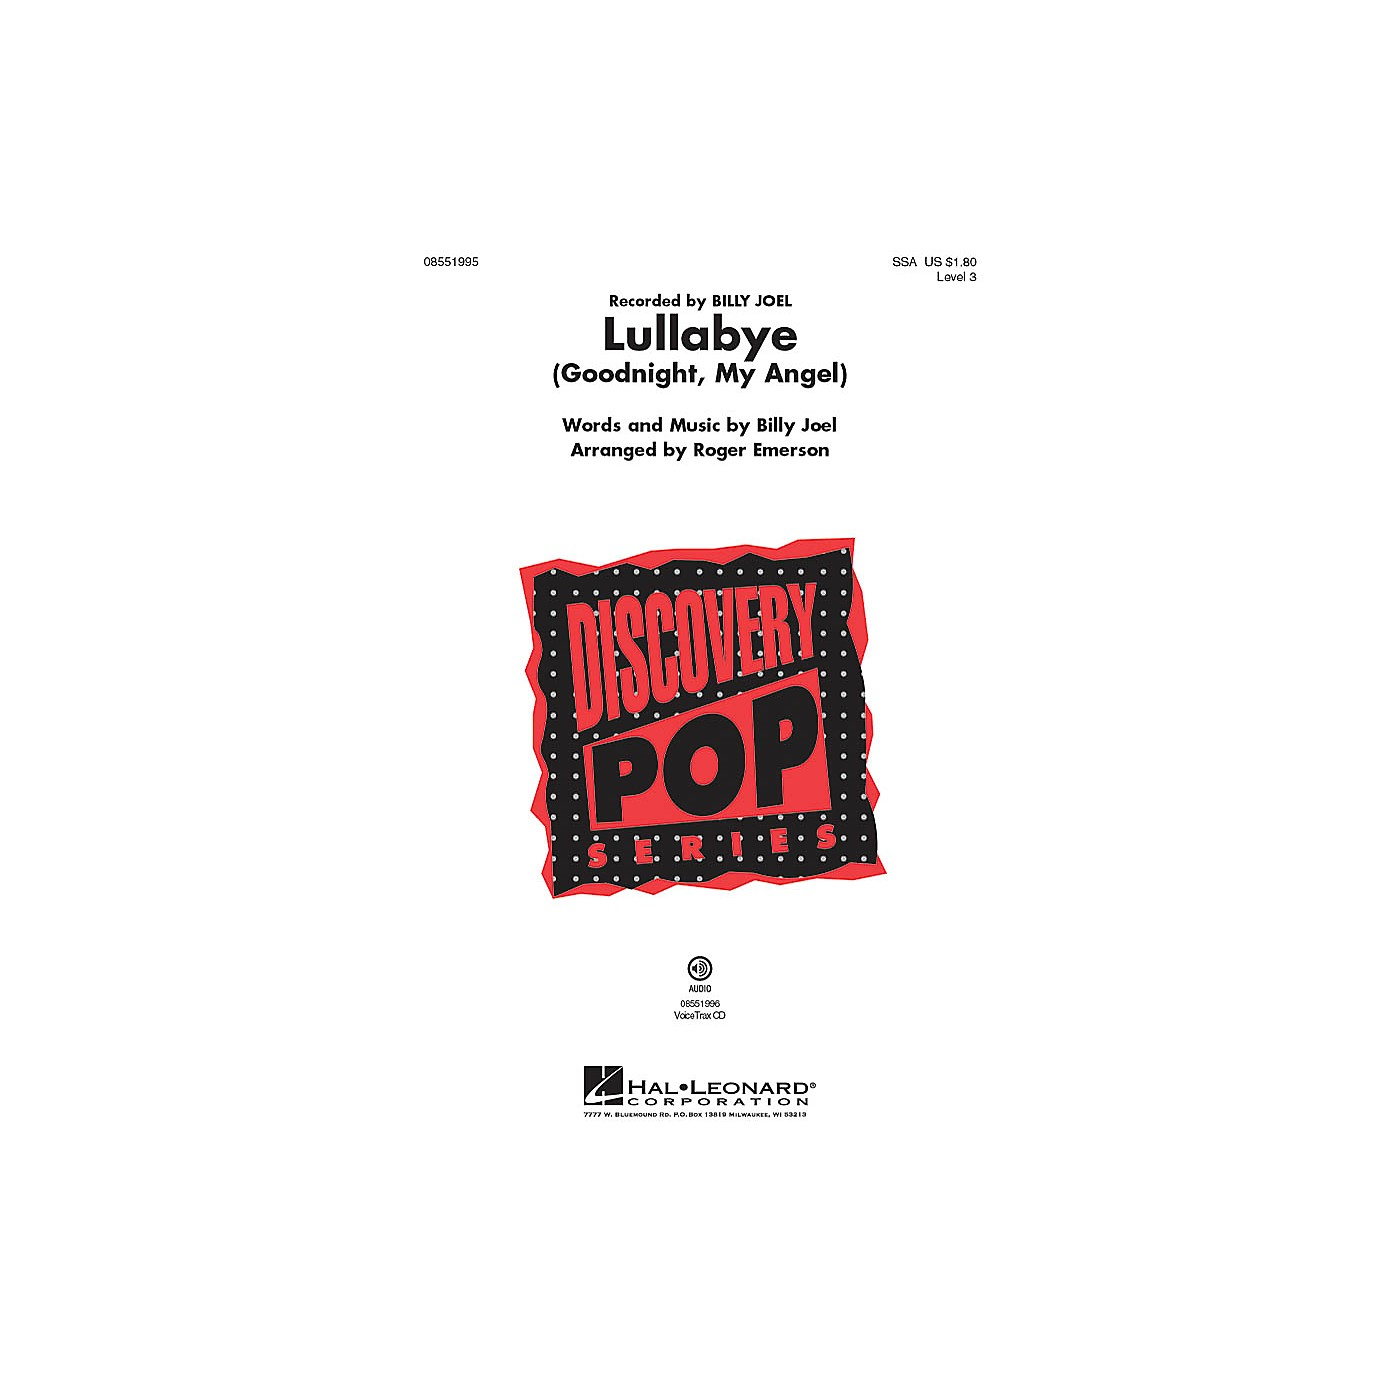 Hal Leonard Lullabye (Goodnight, My Angel) Discovery Level 3 SSA by Billy Joel arranged by Roger Emerson thumbnail